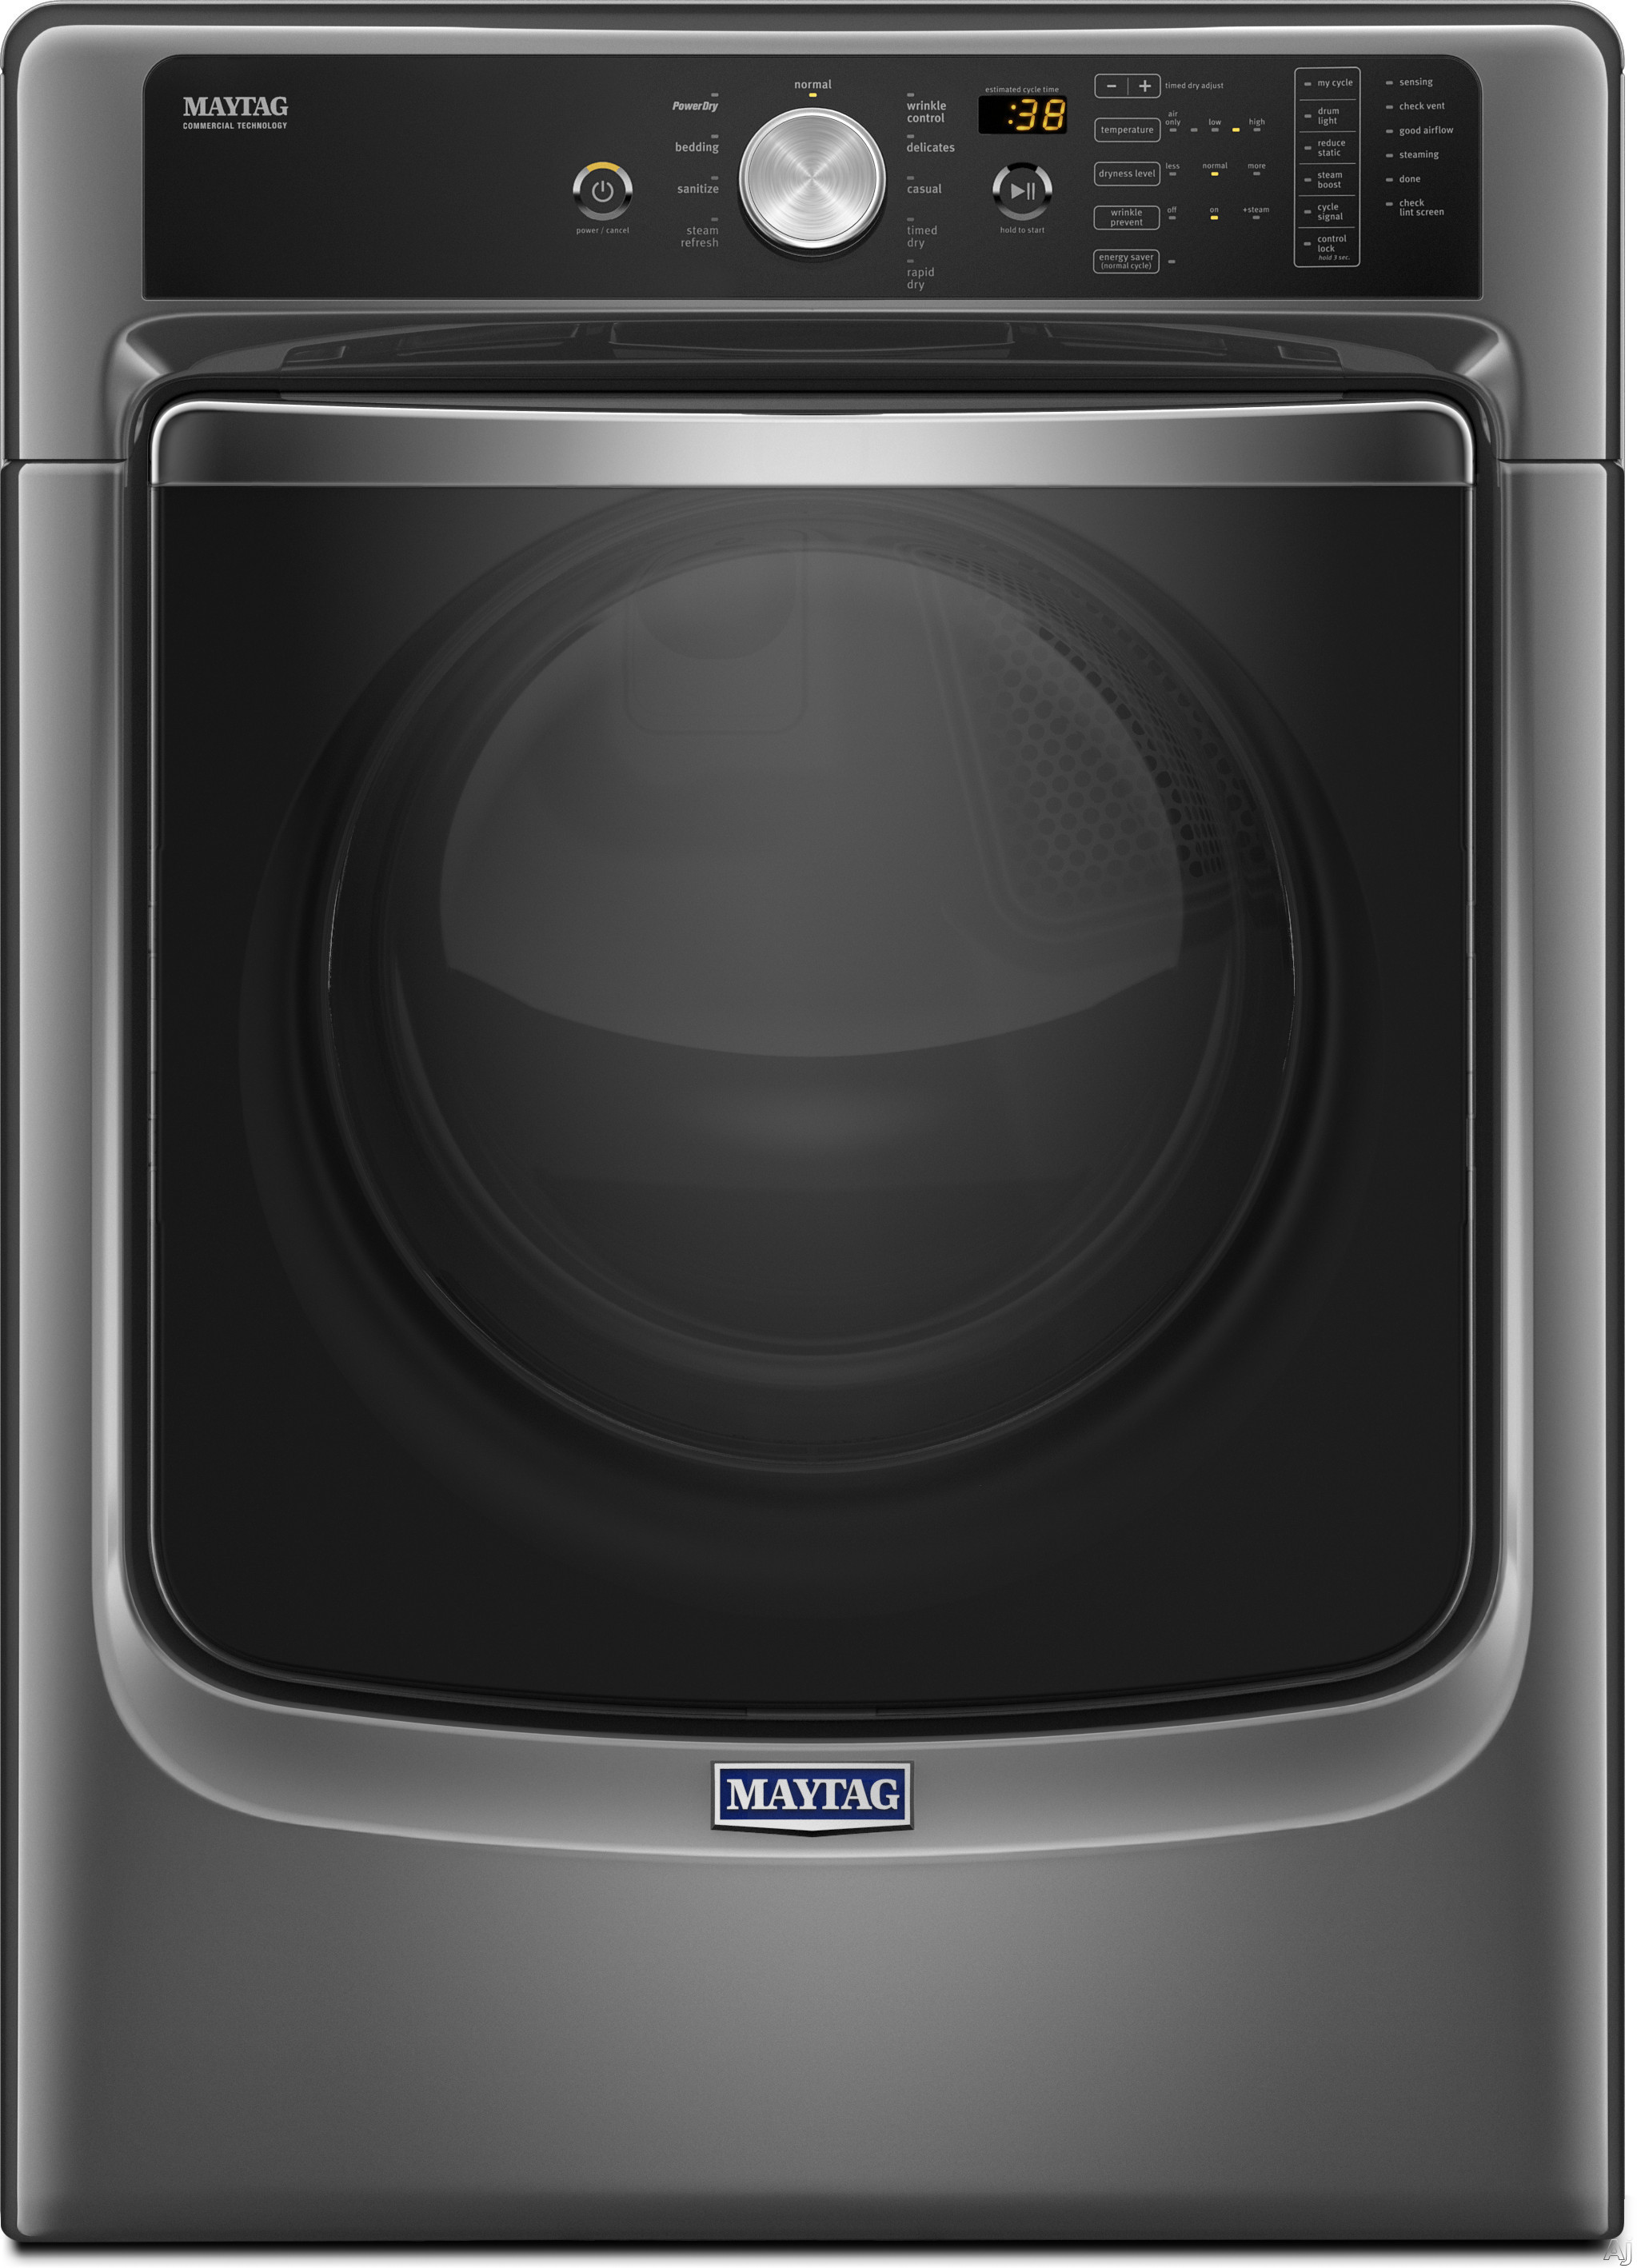 Maytag Mgd8200fc 27 Inch 7 4 Cu Ft Gas Dryer With Steam Powerdry Wrinkle Prevent Sanitize Cycle Rapid Dry Cycle 7 4 Cu Ft Capacity 10 Dry Cycles 5 Temperature Selections Ada Compliant And